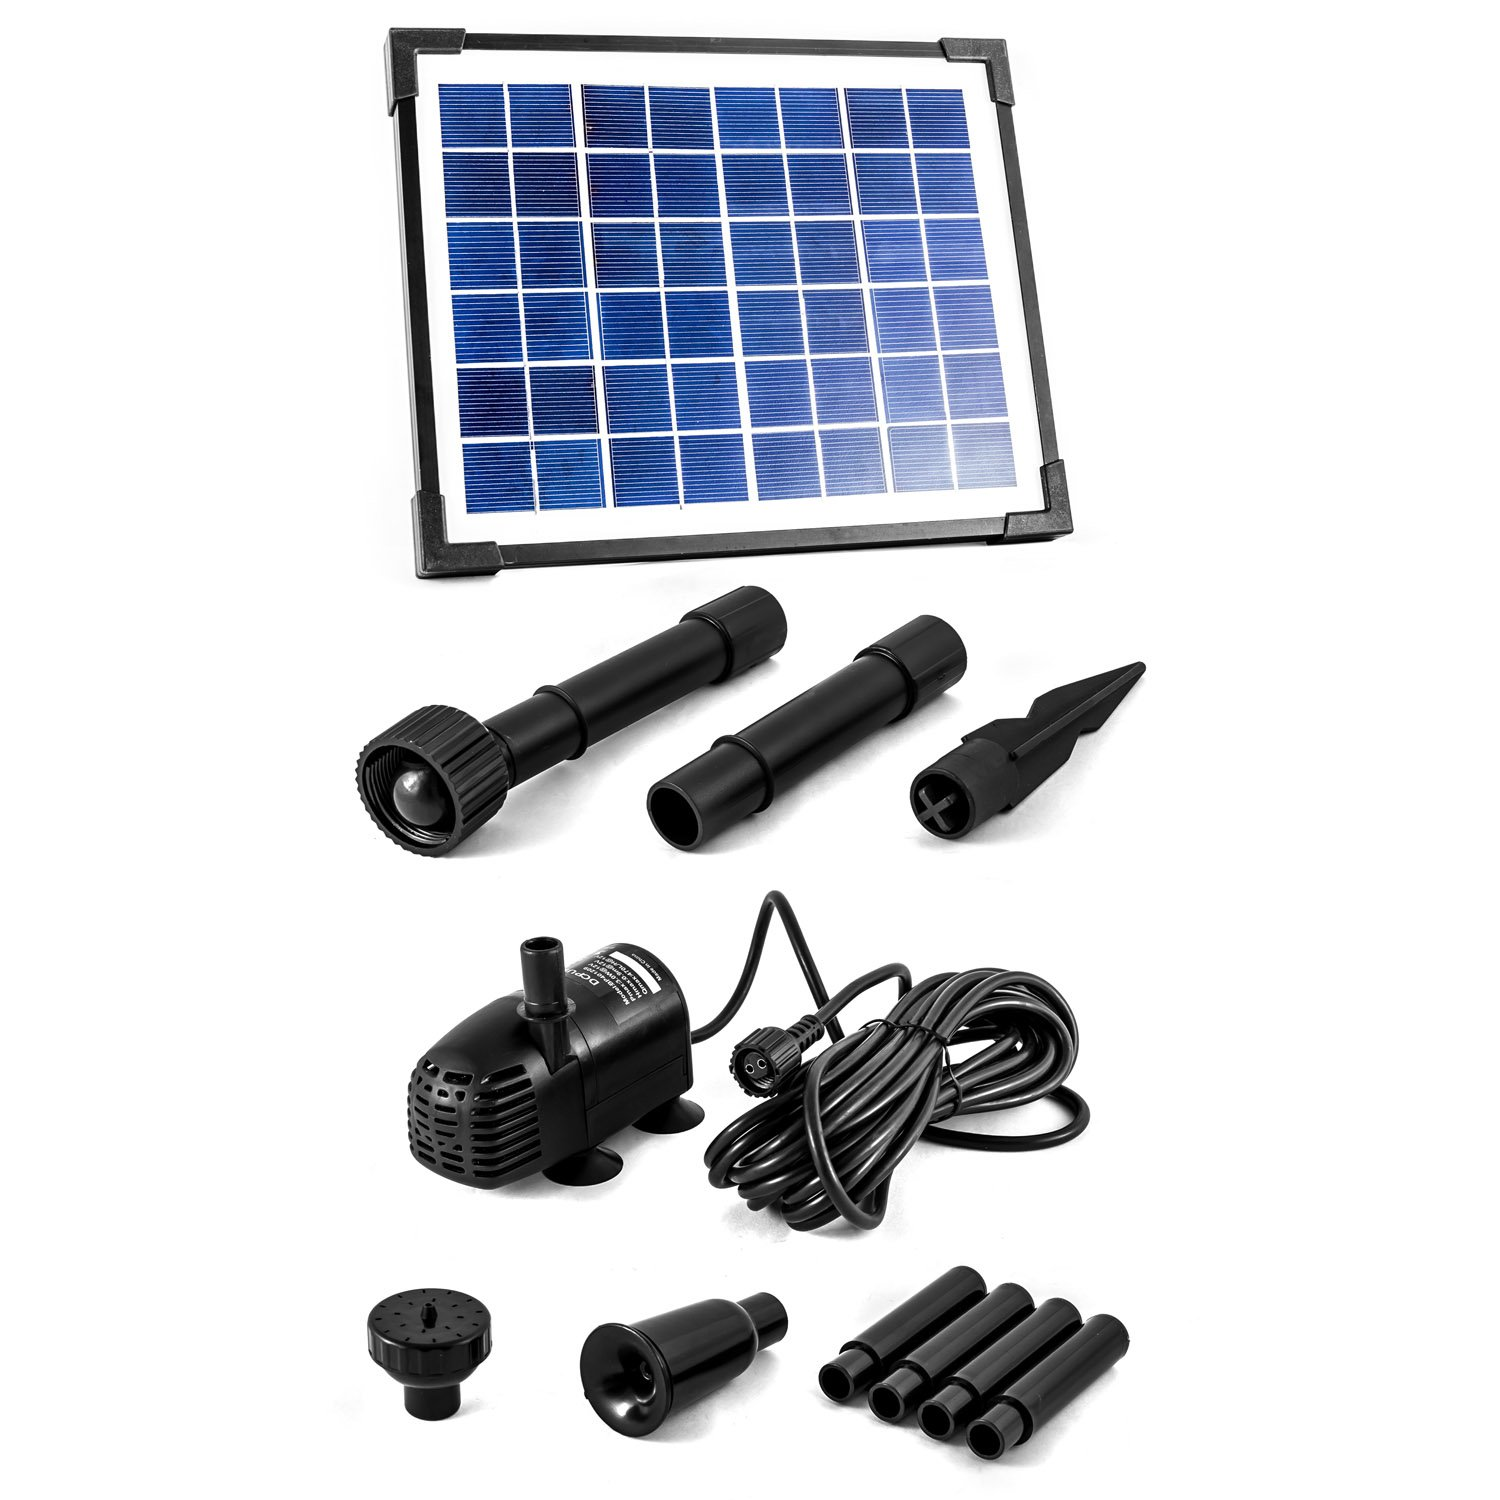 CLGarden SP-S2 Solar Powered Pump for Water Fountain 5W sun-powered Panel Kit Container plug&play rizers sprinklers pump + panel pond feature